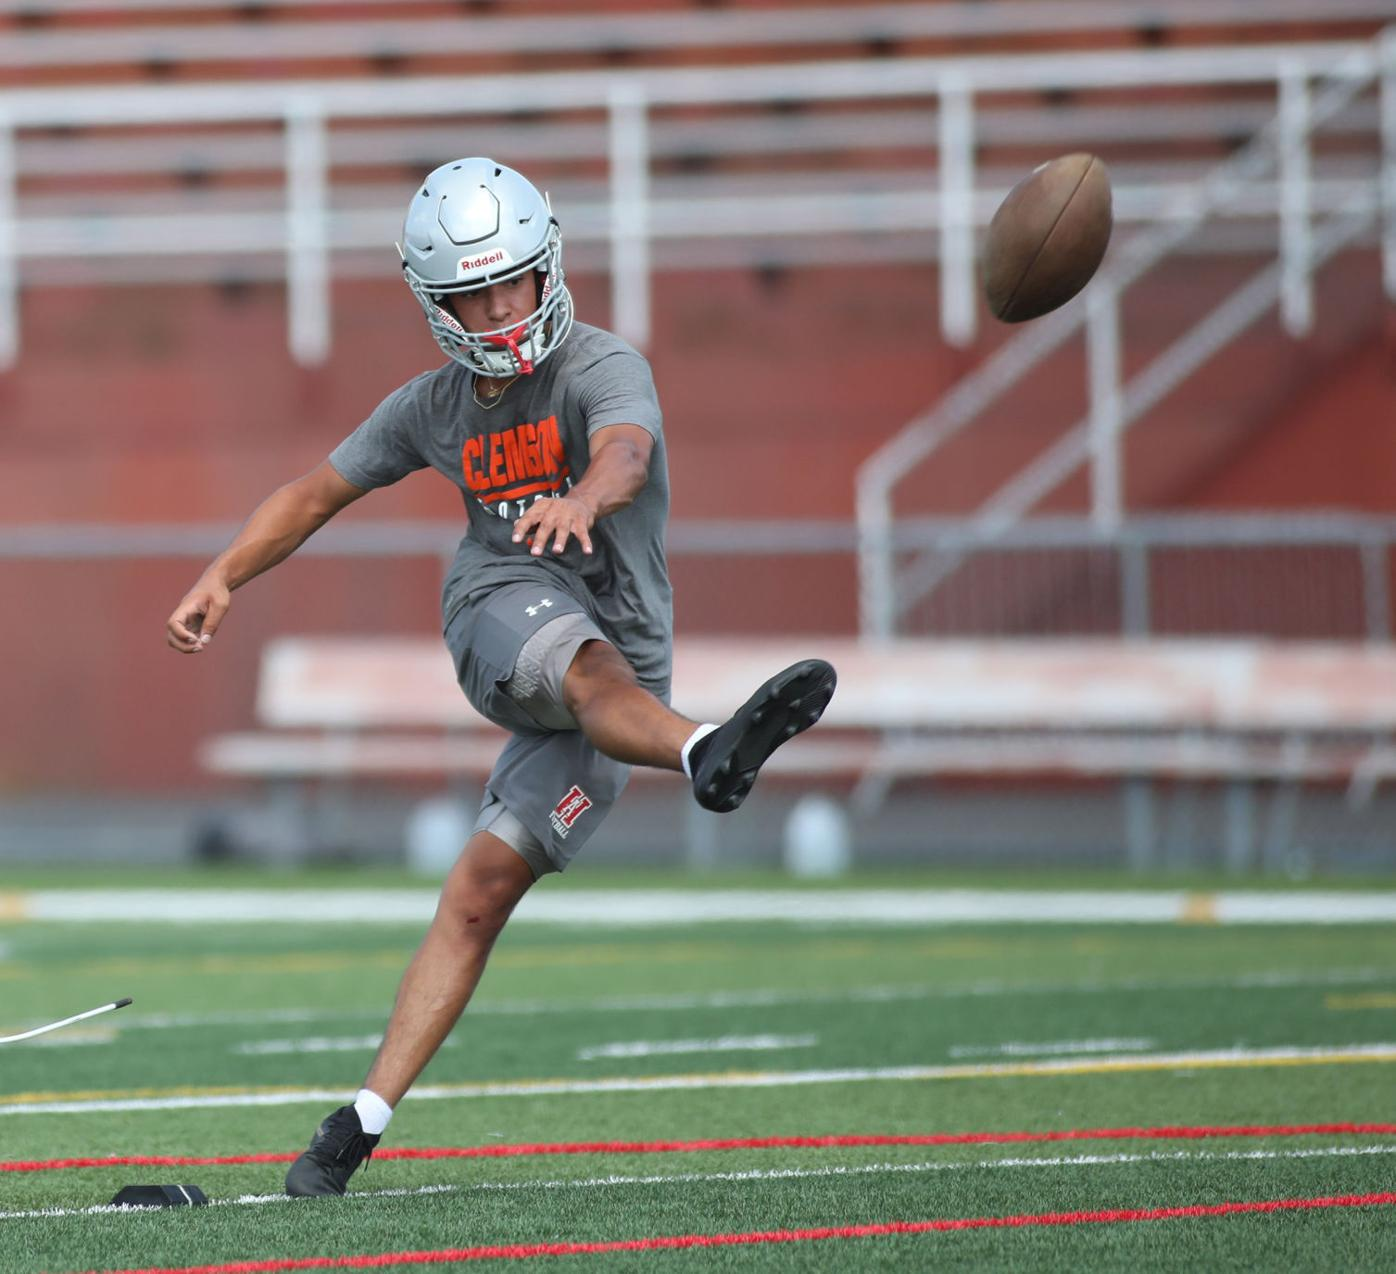 Buchman, Cougars creating a new path